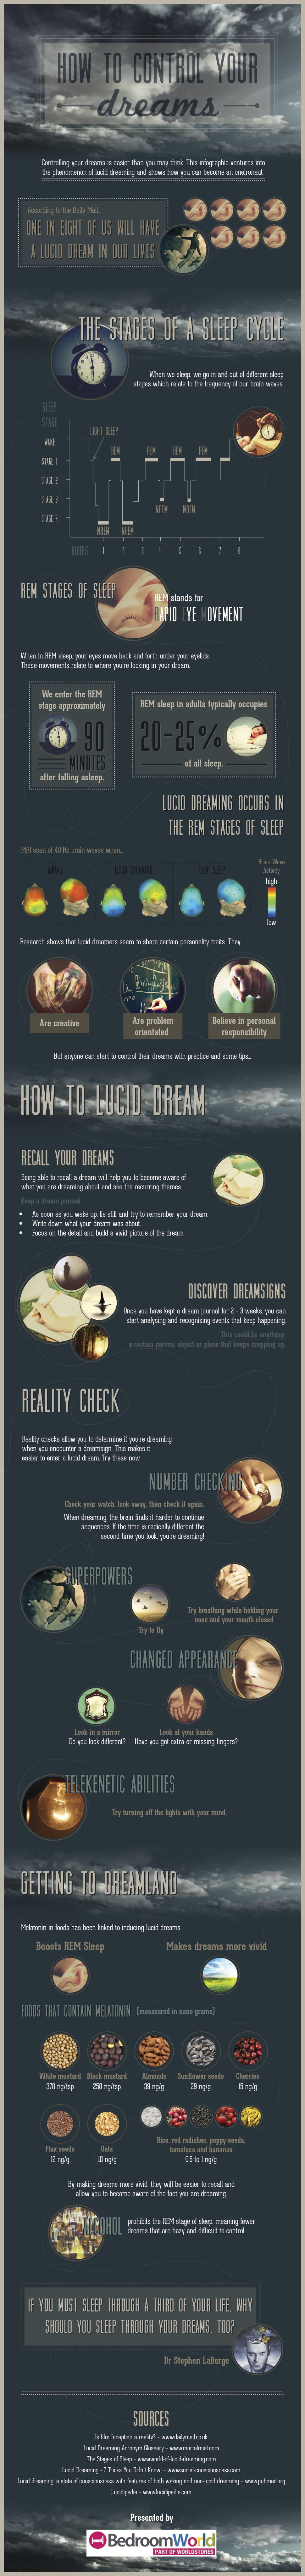 Infographic: How to Control You dreams